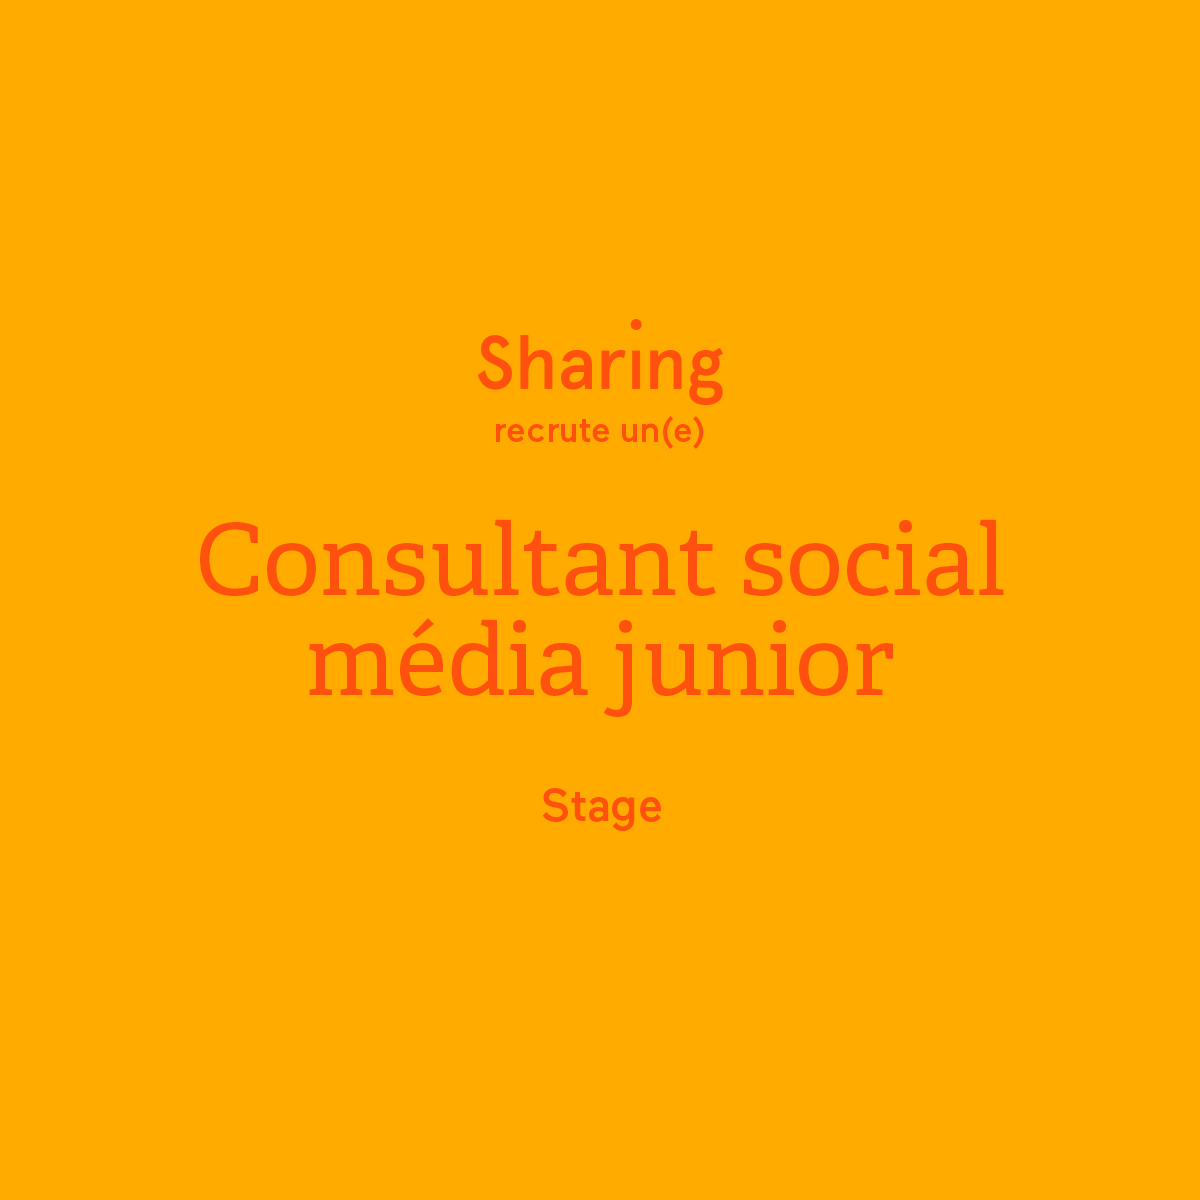 Sharing recrute consultant social media junior stage communication agence